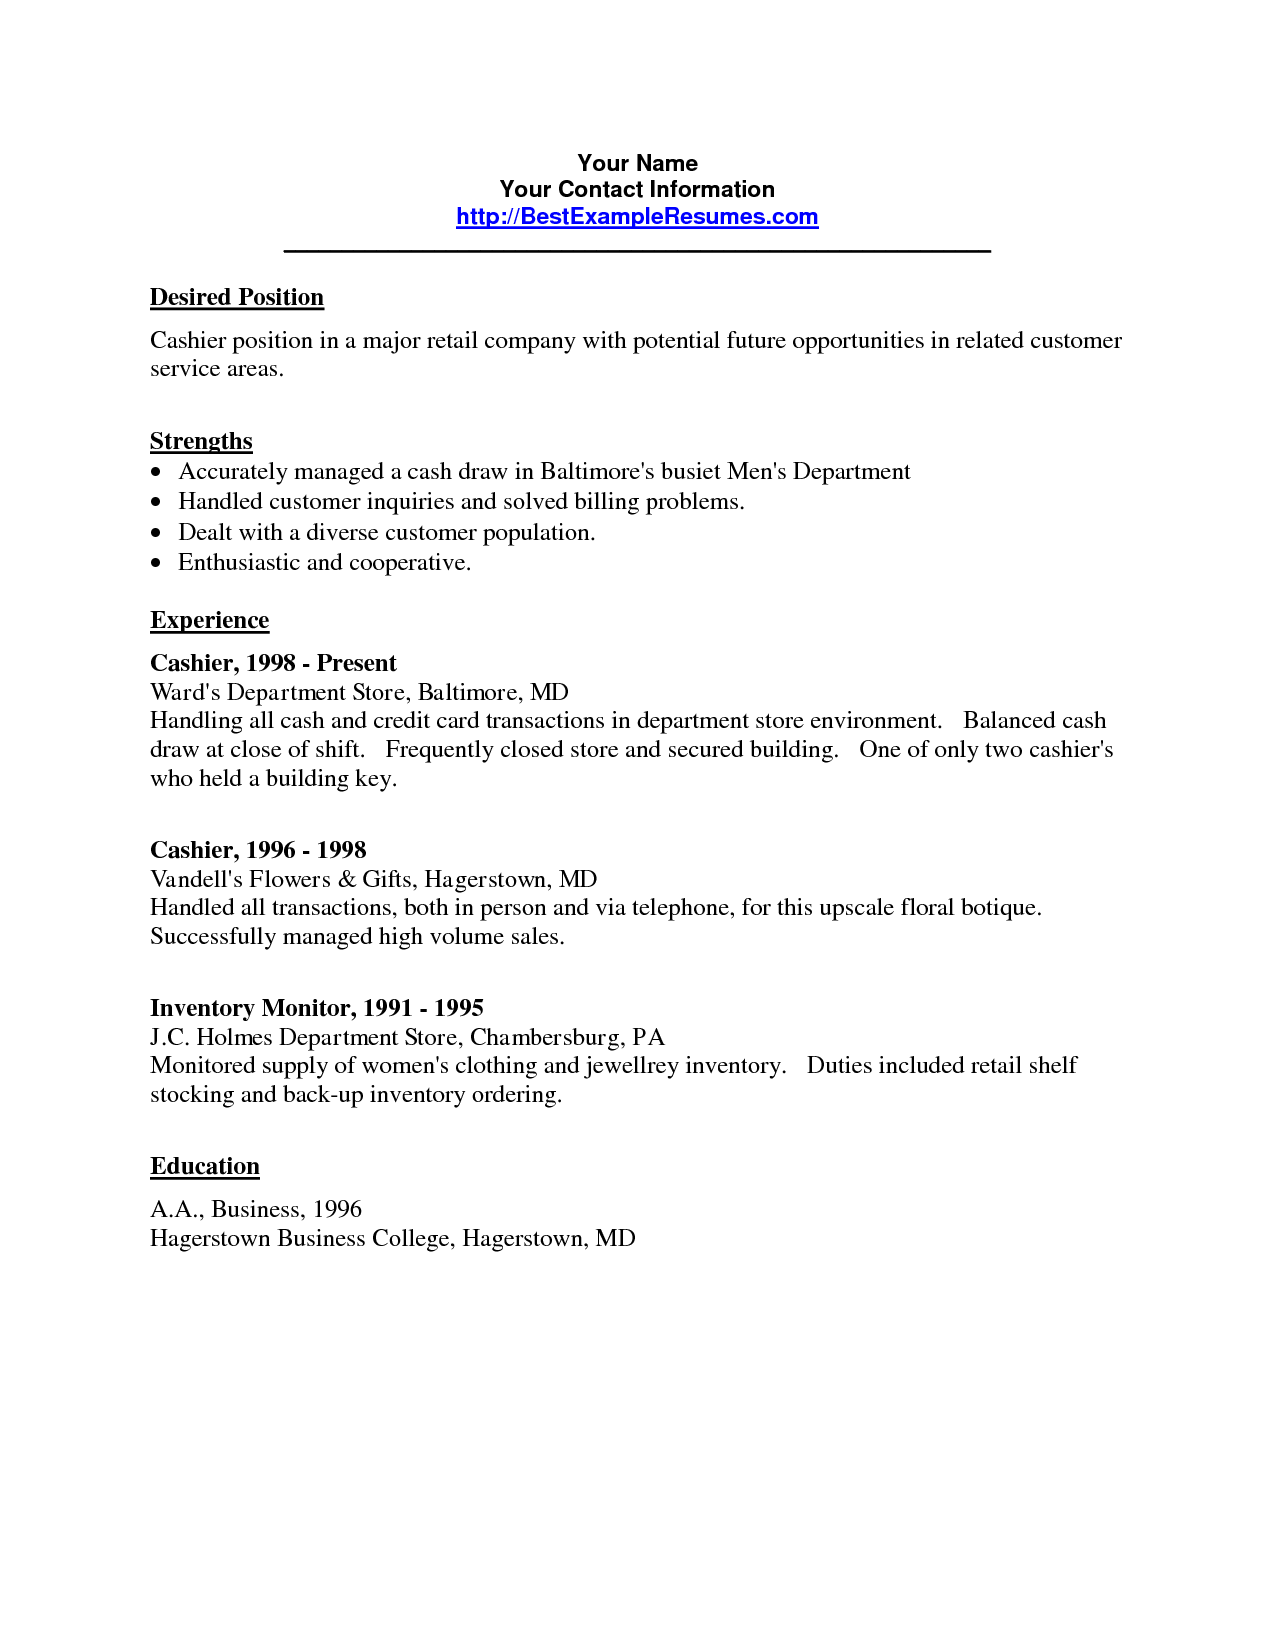 Example Of A Job Resume Job Resume Sample Cashier Examples For Application Impressive